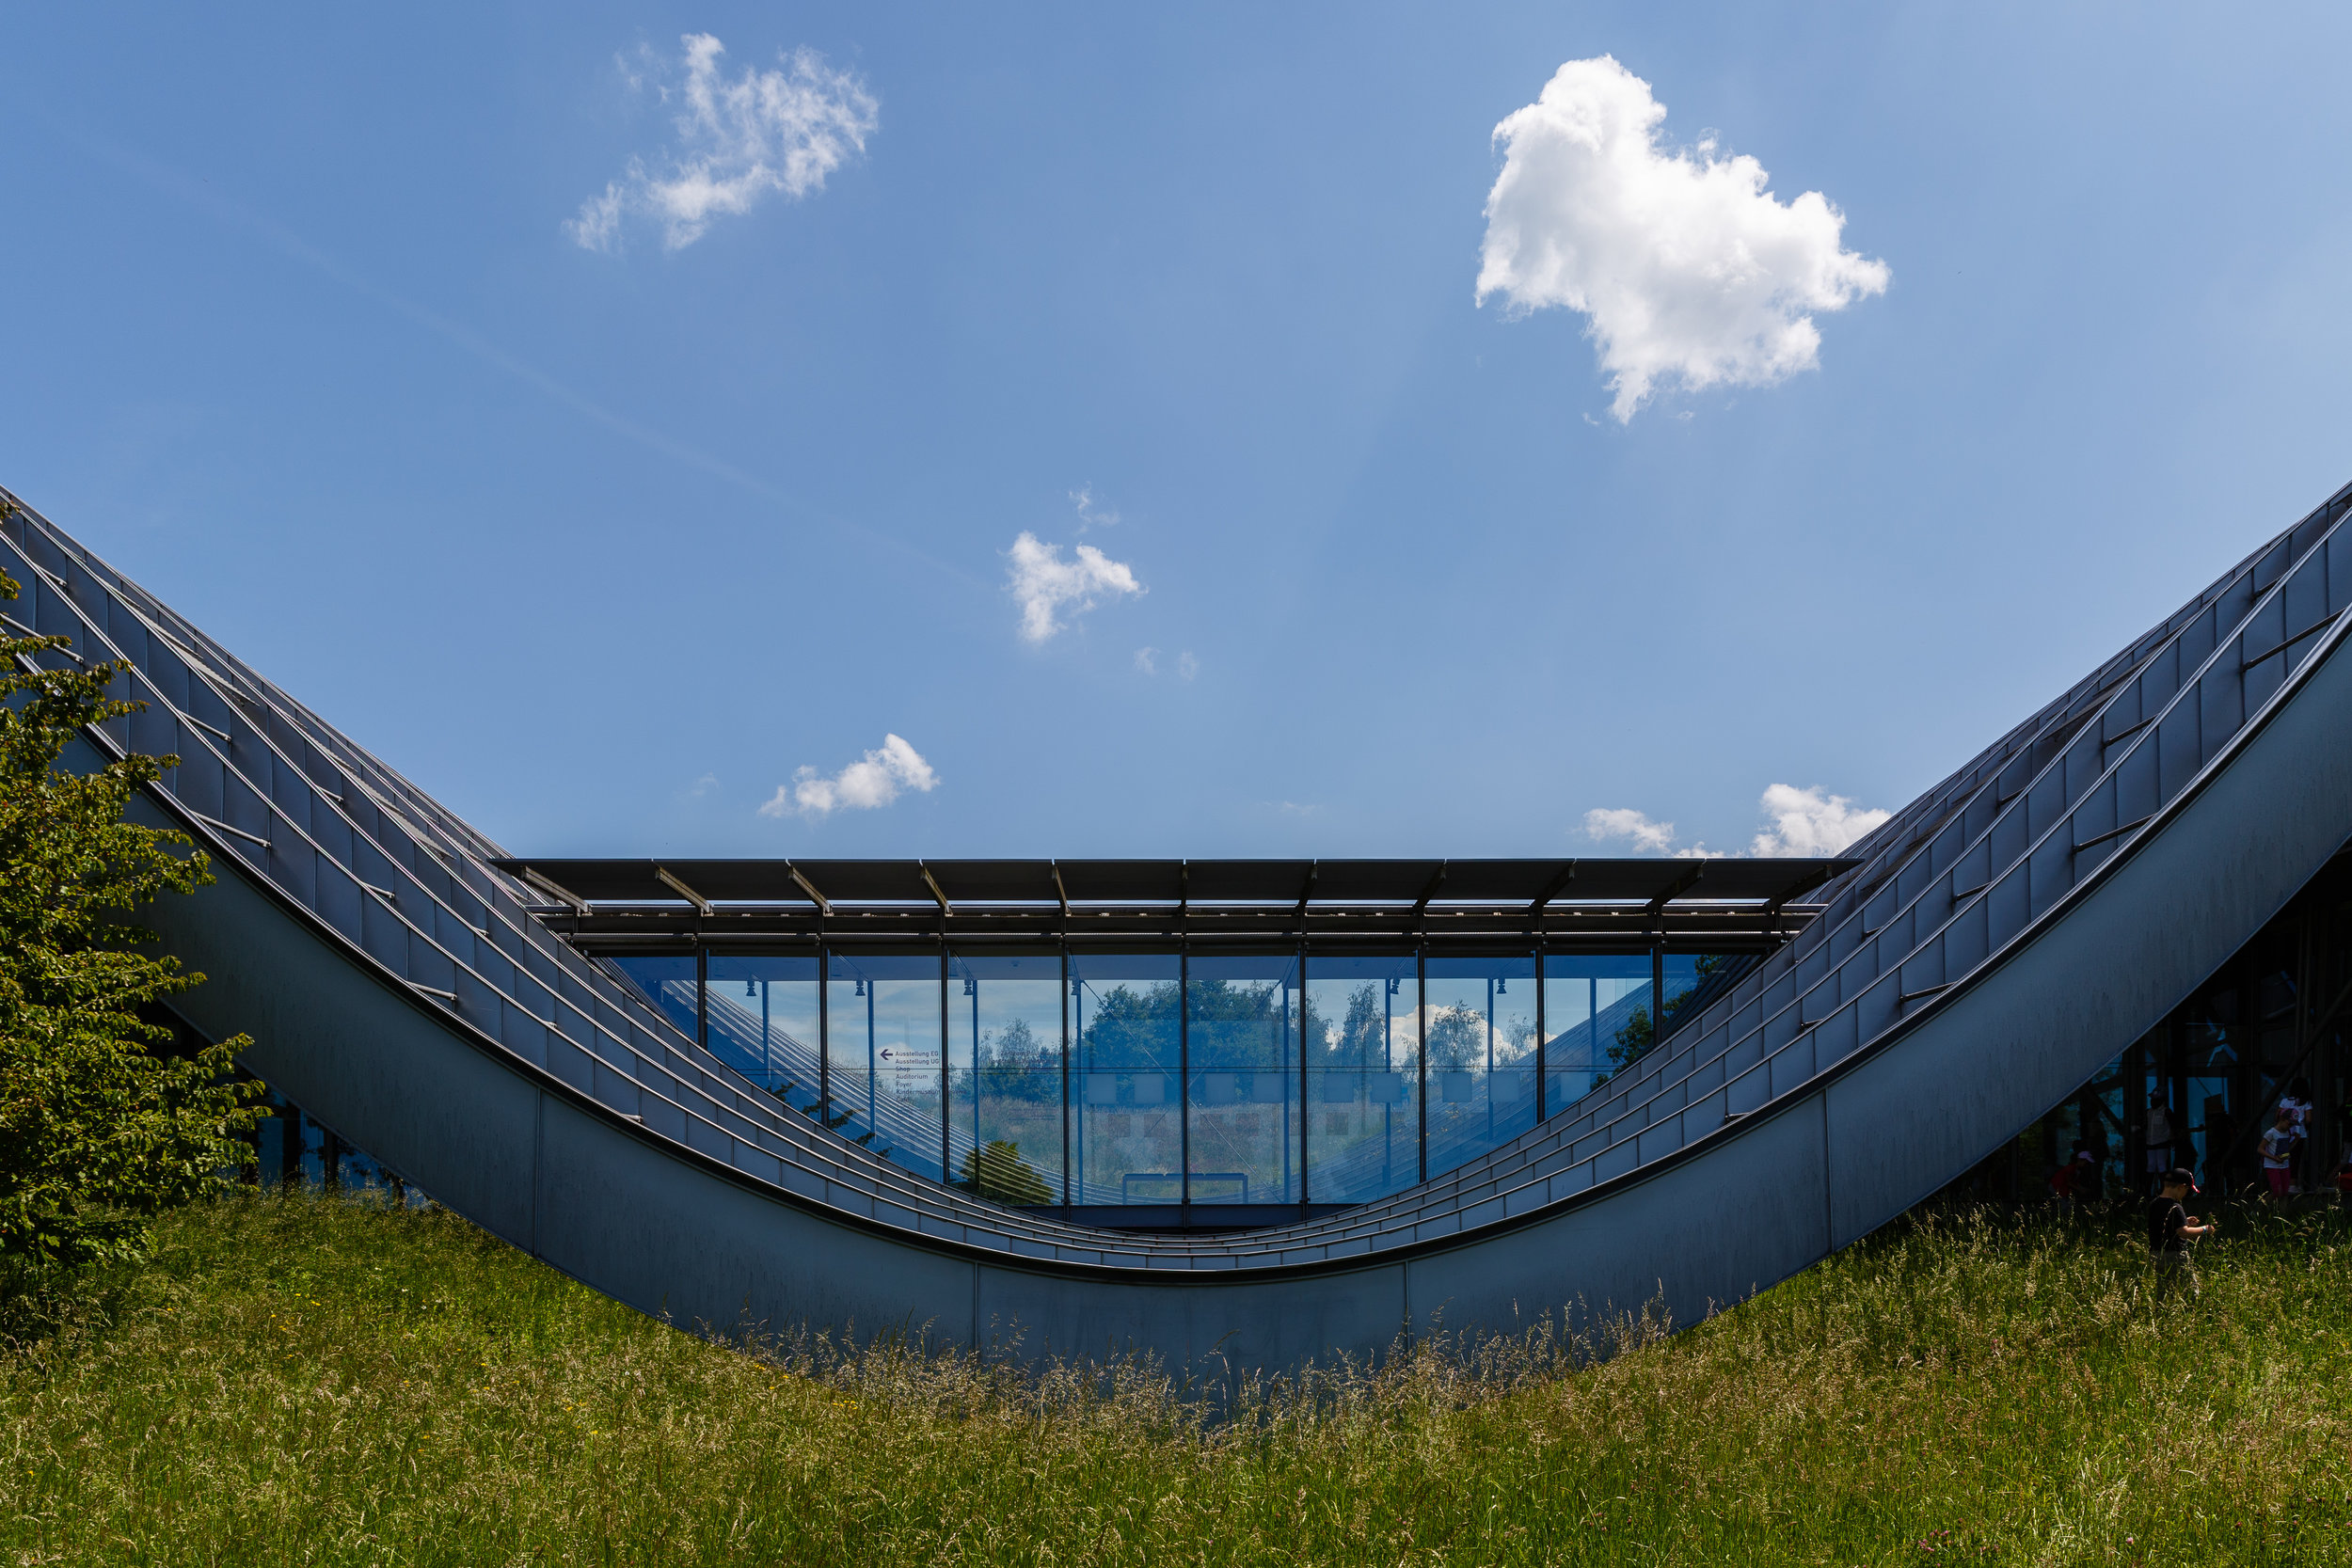 Zentrum Paul Klee designed by Renzo Piano Building Workshop